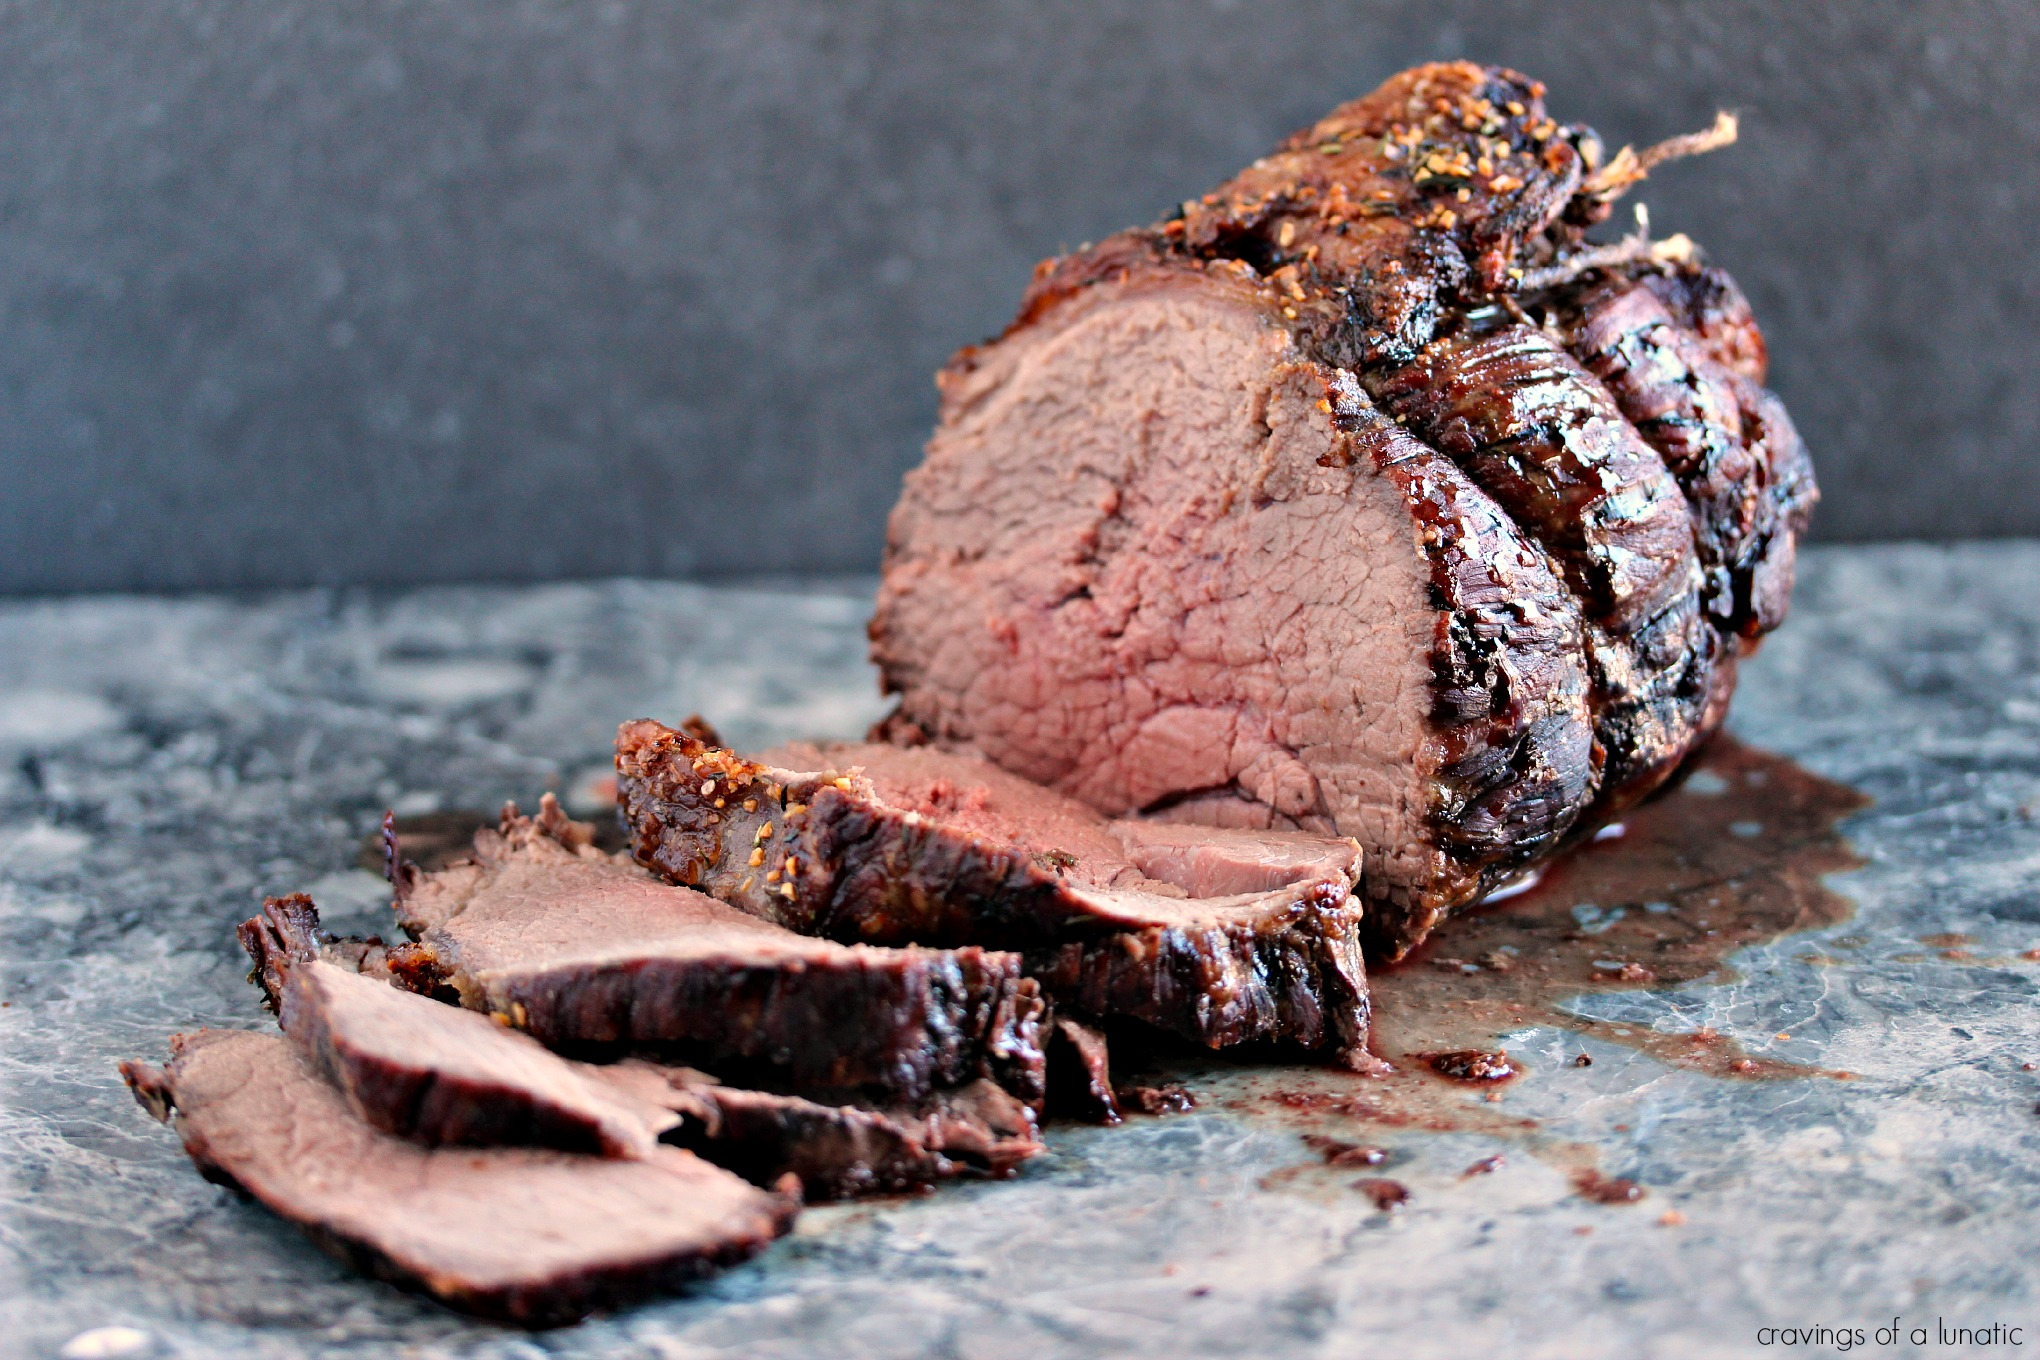 Best way to cook sirloin tip roast in convection oven